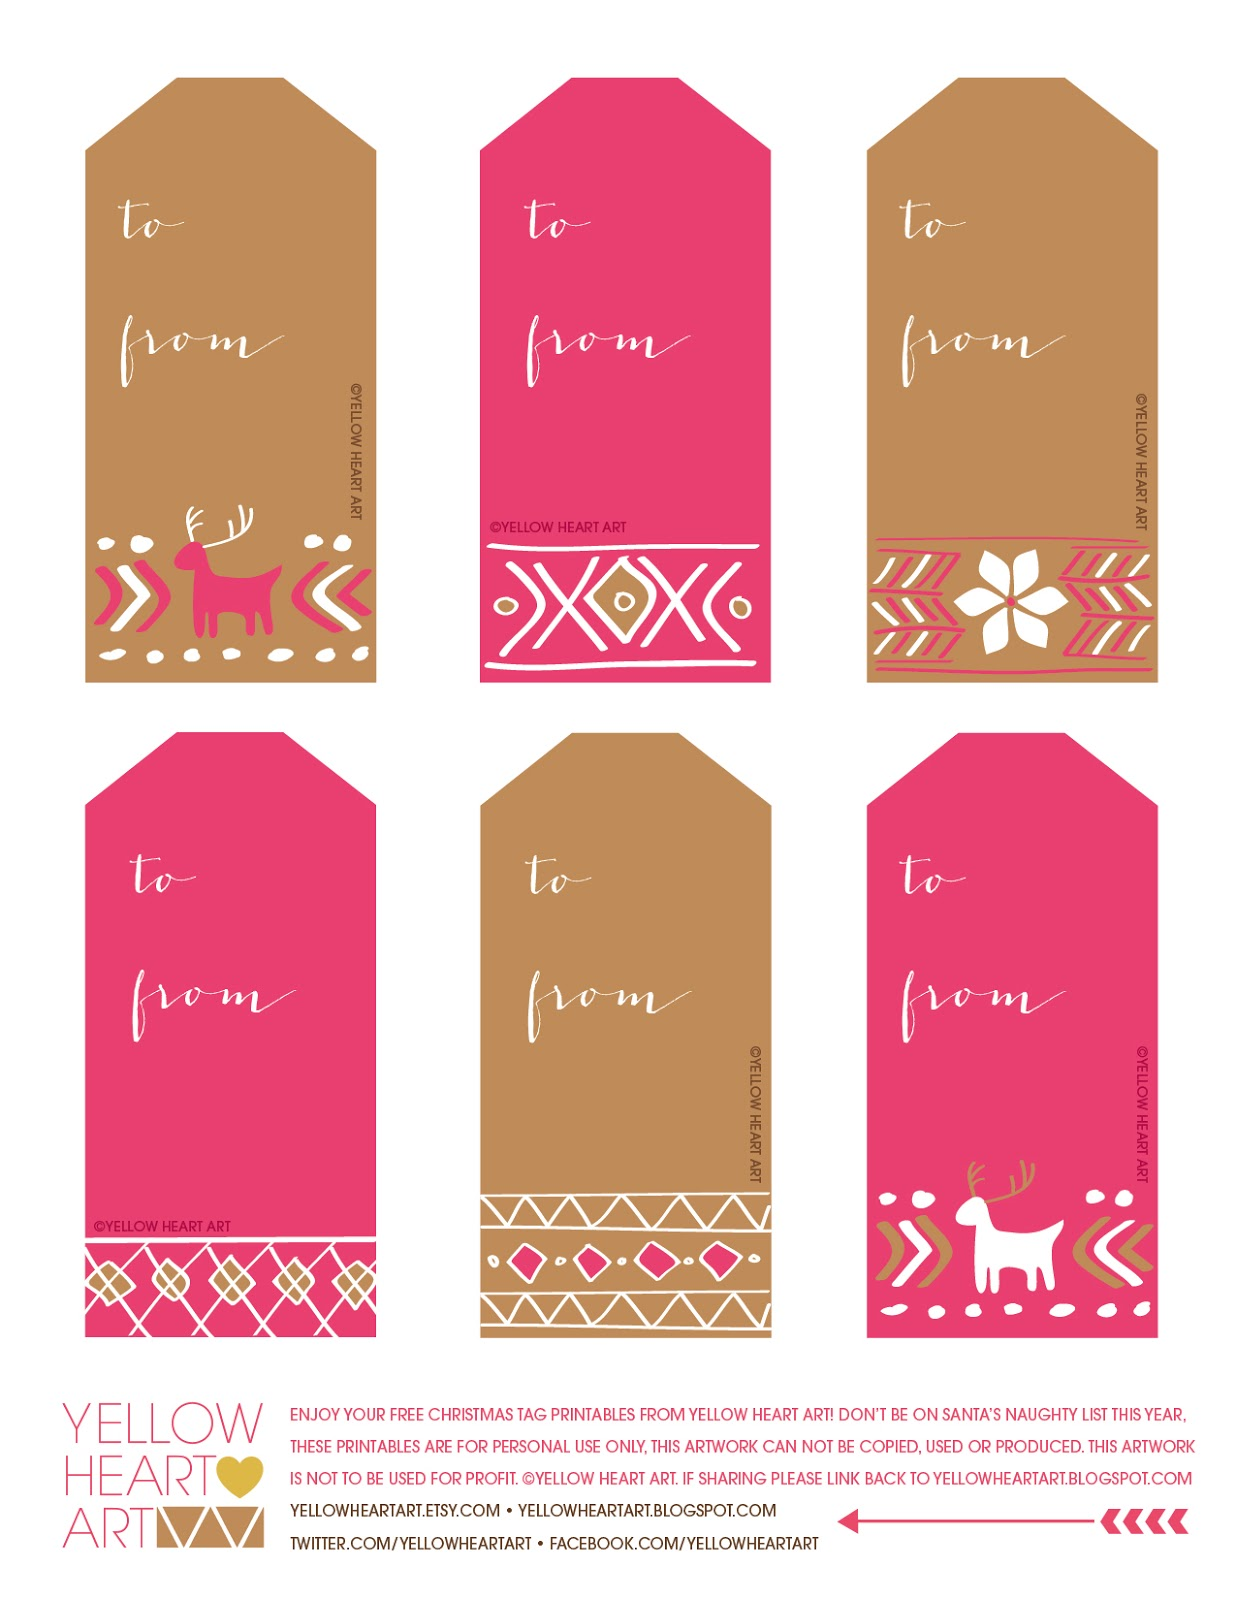 image regarding 12 Days of Christmas Printable Tags referred to as jessicaNdesigns: 12 Times of Xmas: Free of charge, Printable Present Tags